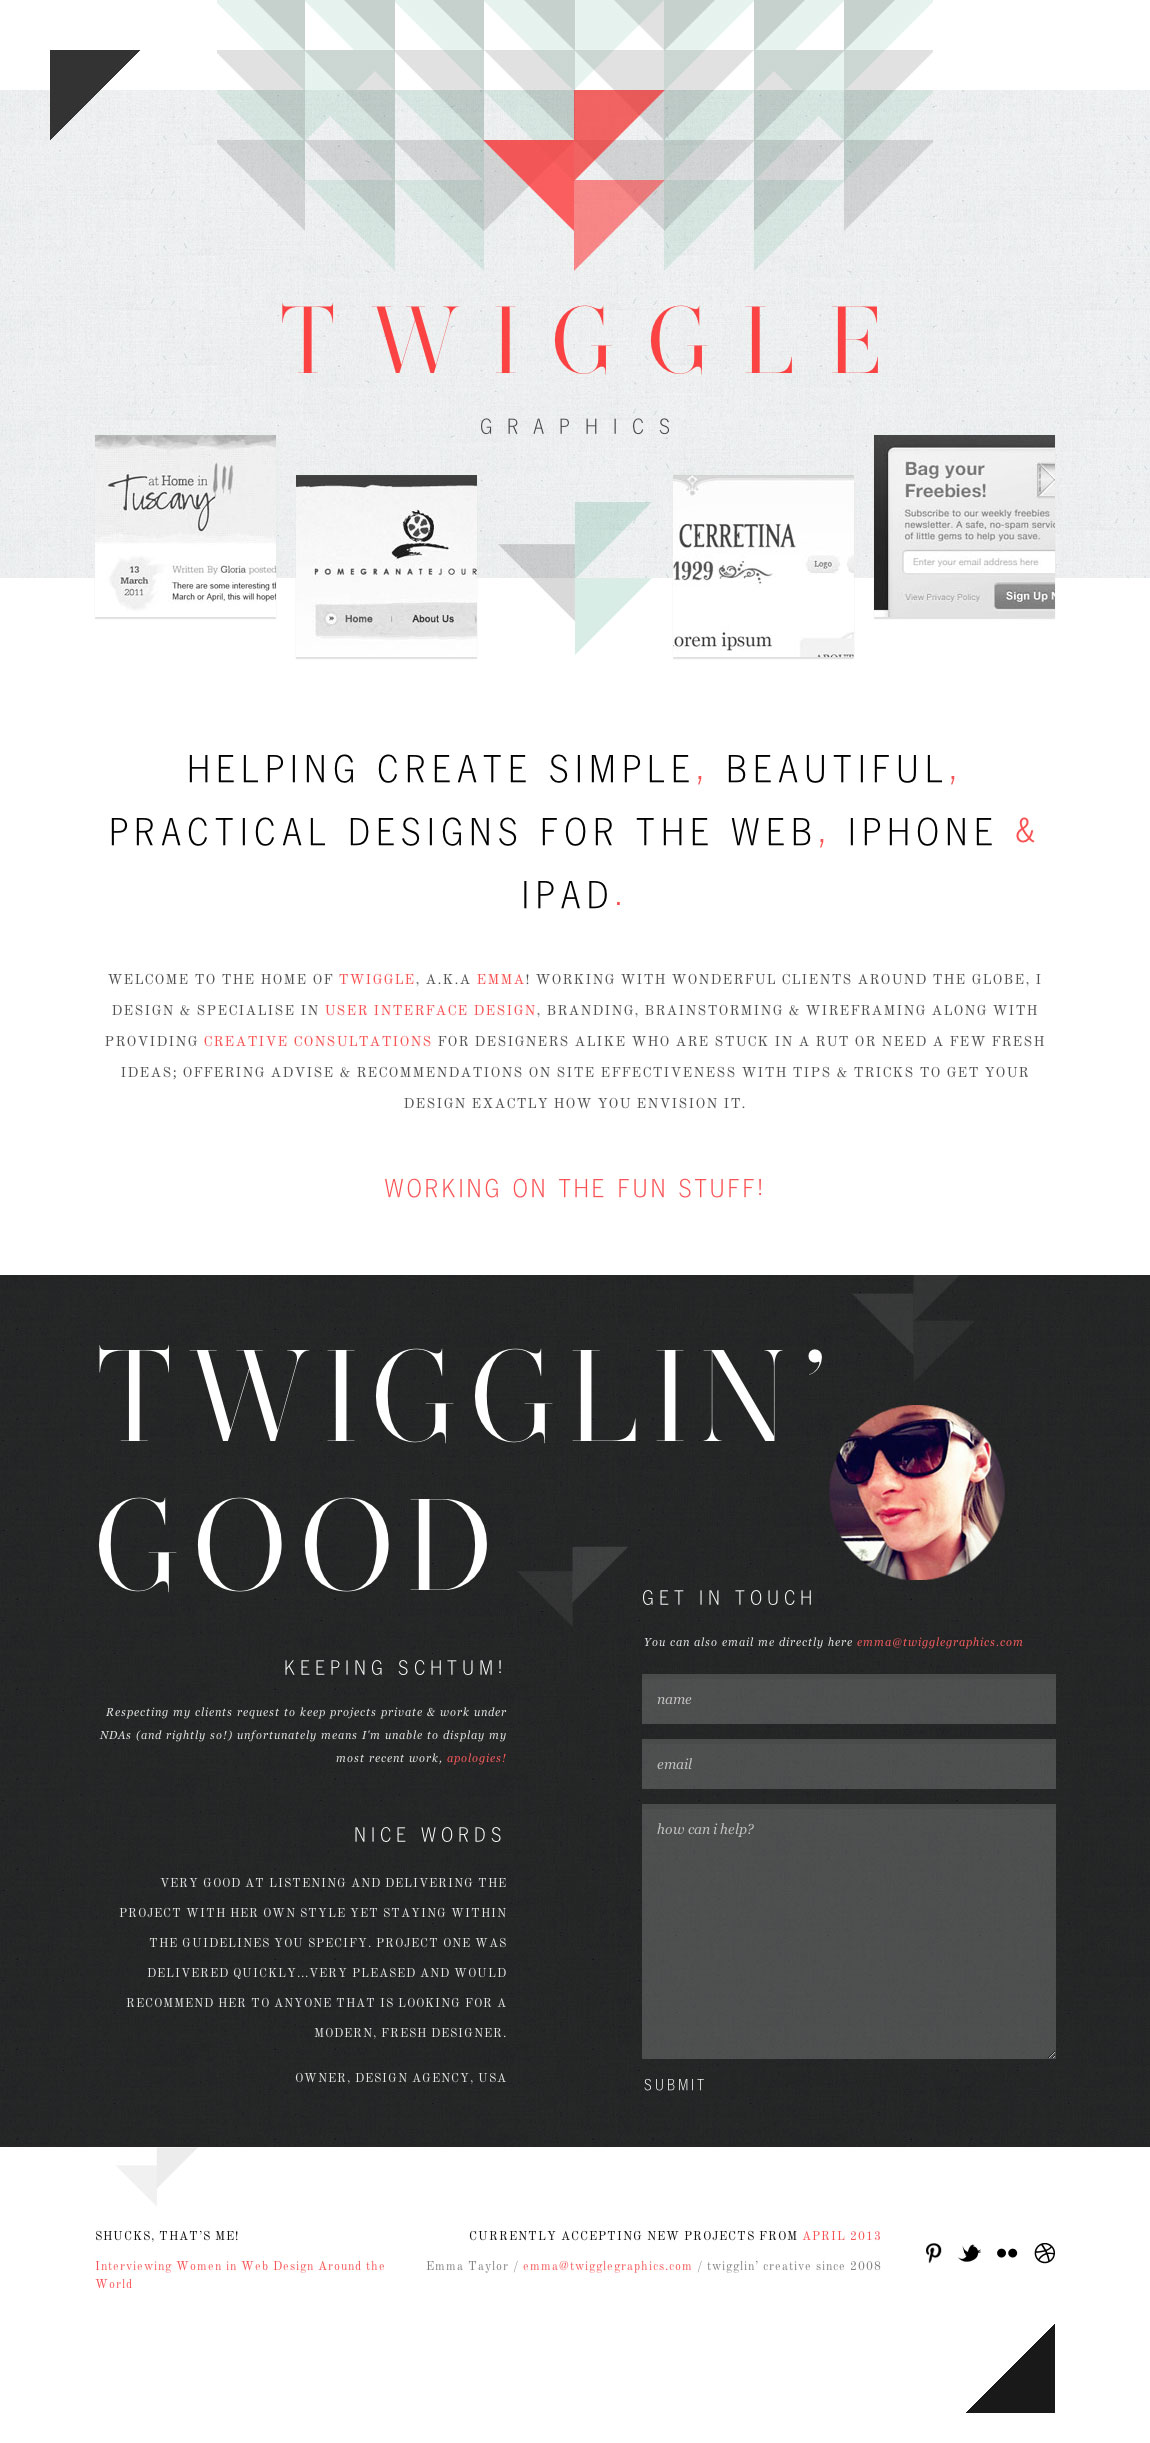 Twiggle Graphics Website Screenshot